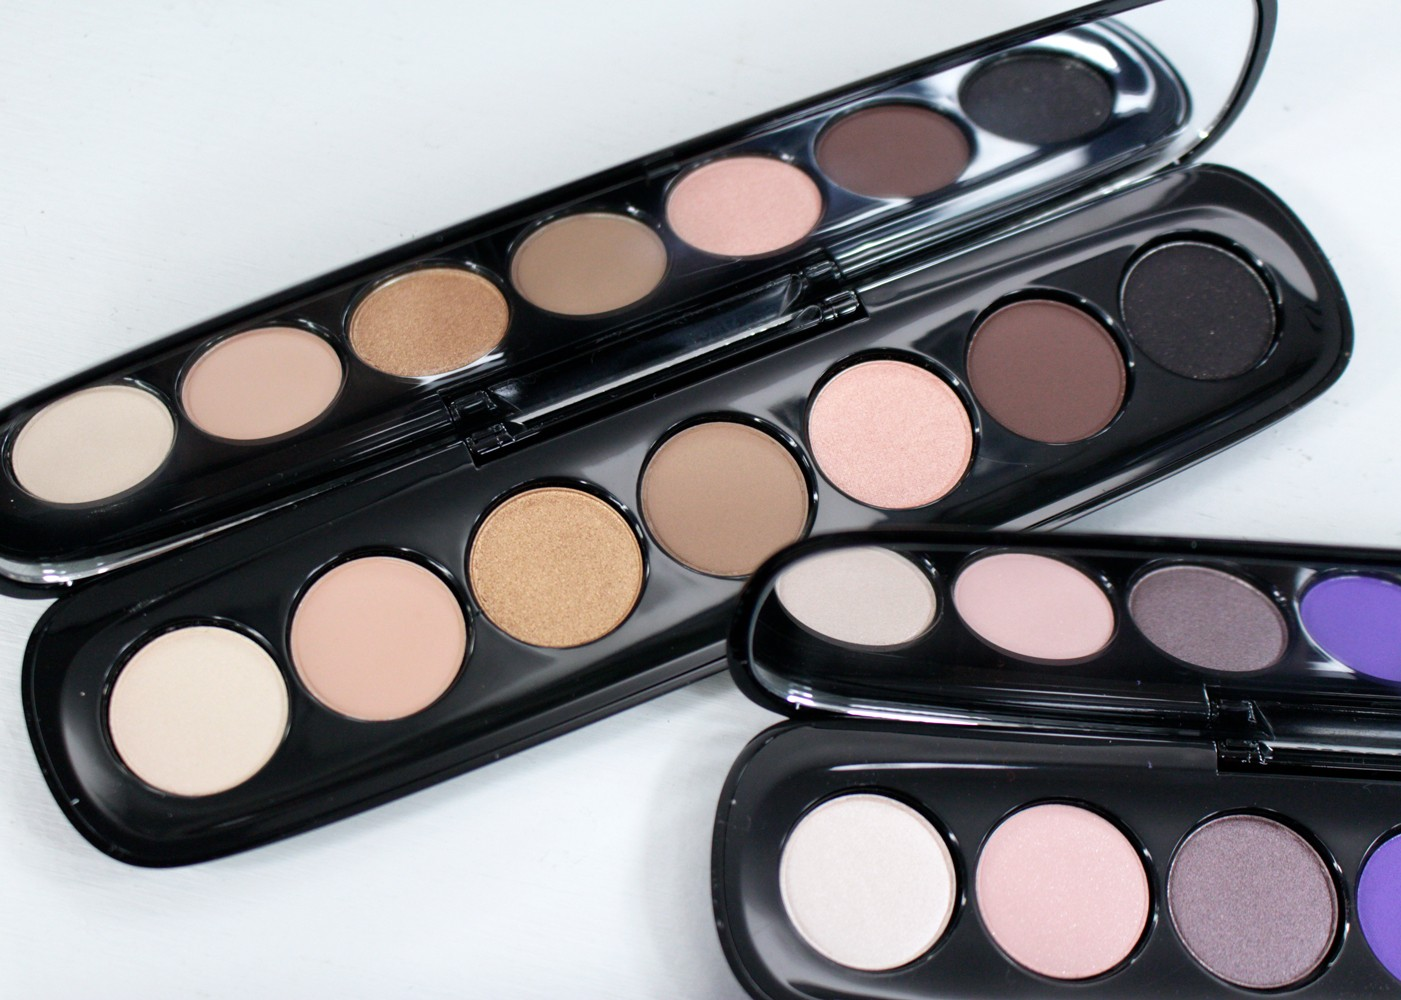 Marc Jacobs Beauty Eye Conic Eyeshadow Palette Glambition